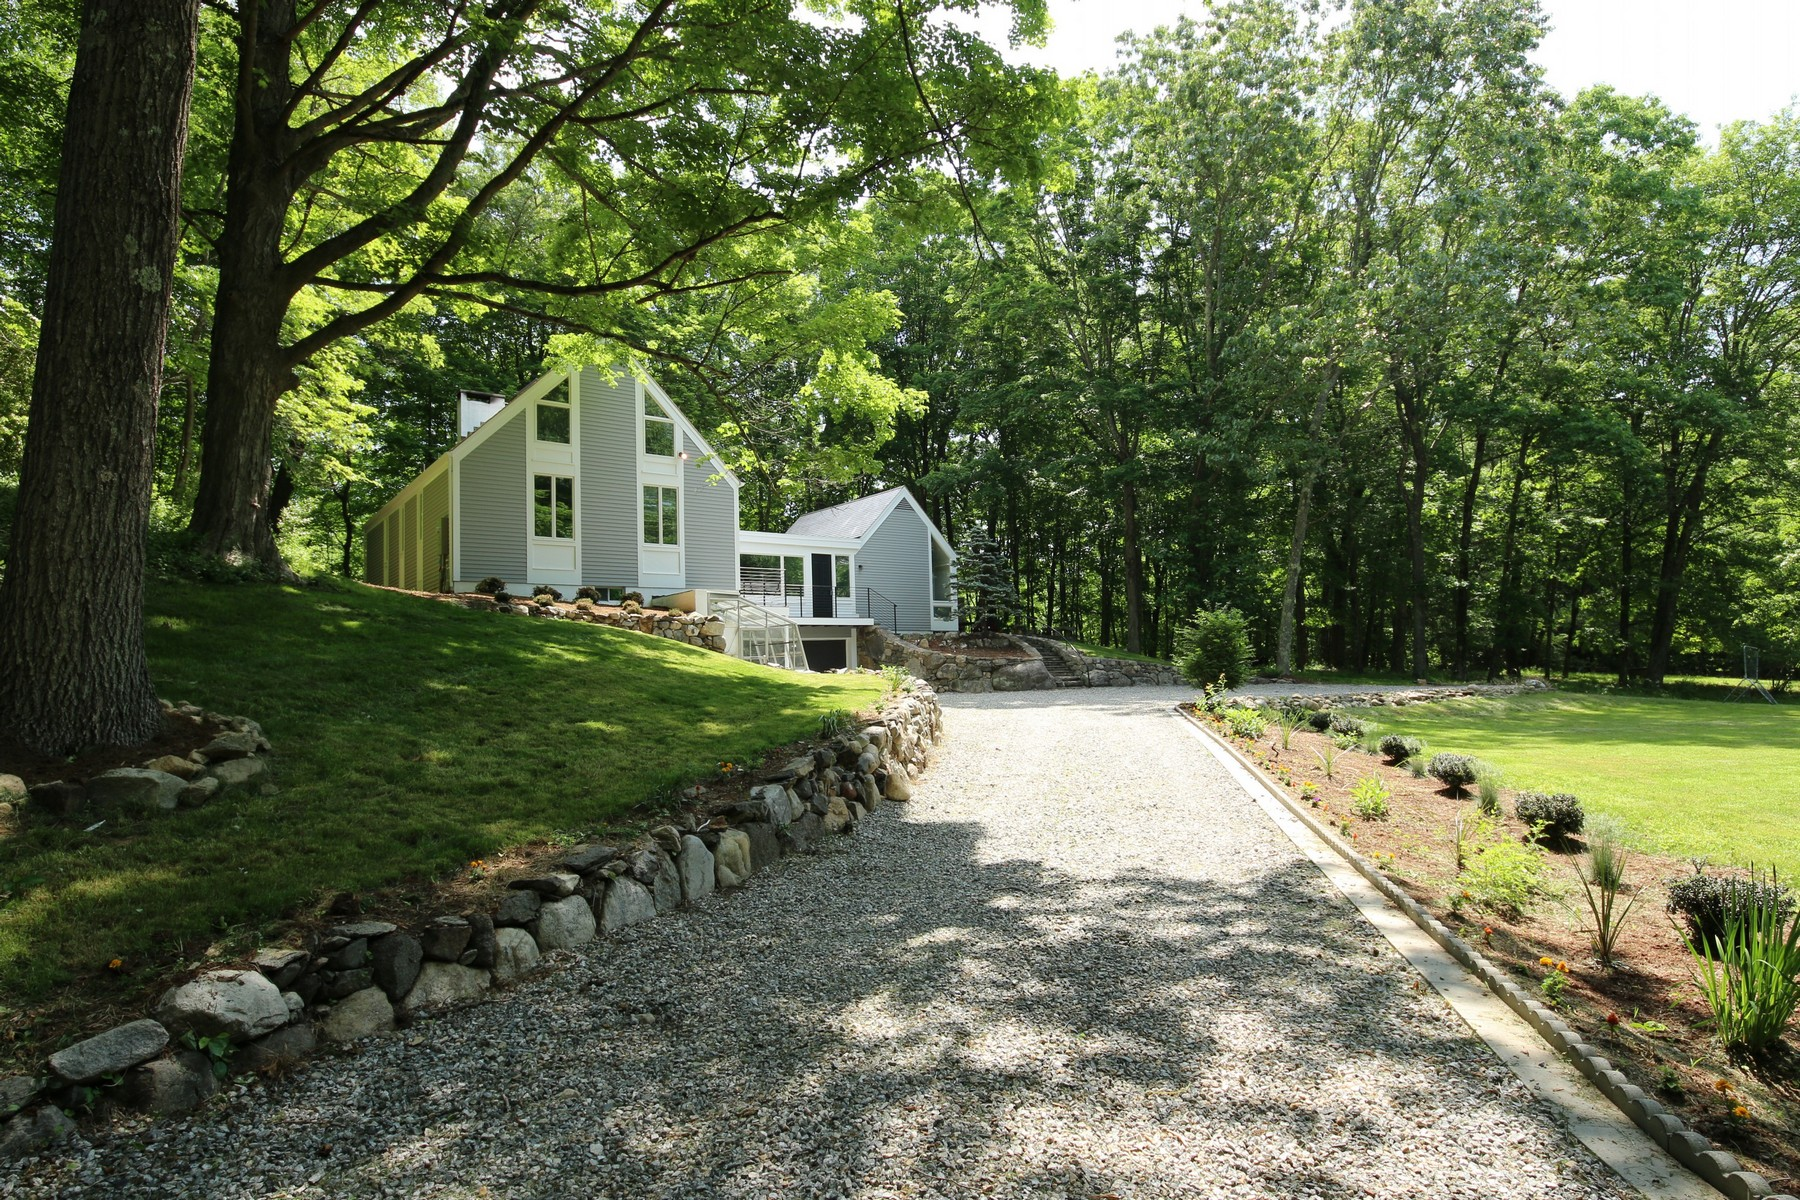 Single Family Home for Sale at Spectacular Custom Renovation 352 Florida Hill Road Ridgefield, Connecticut, 06877 United States